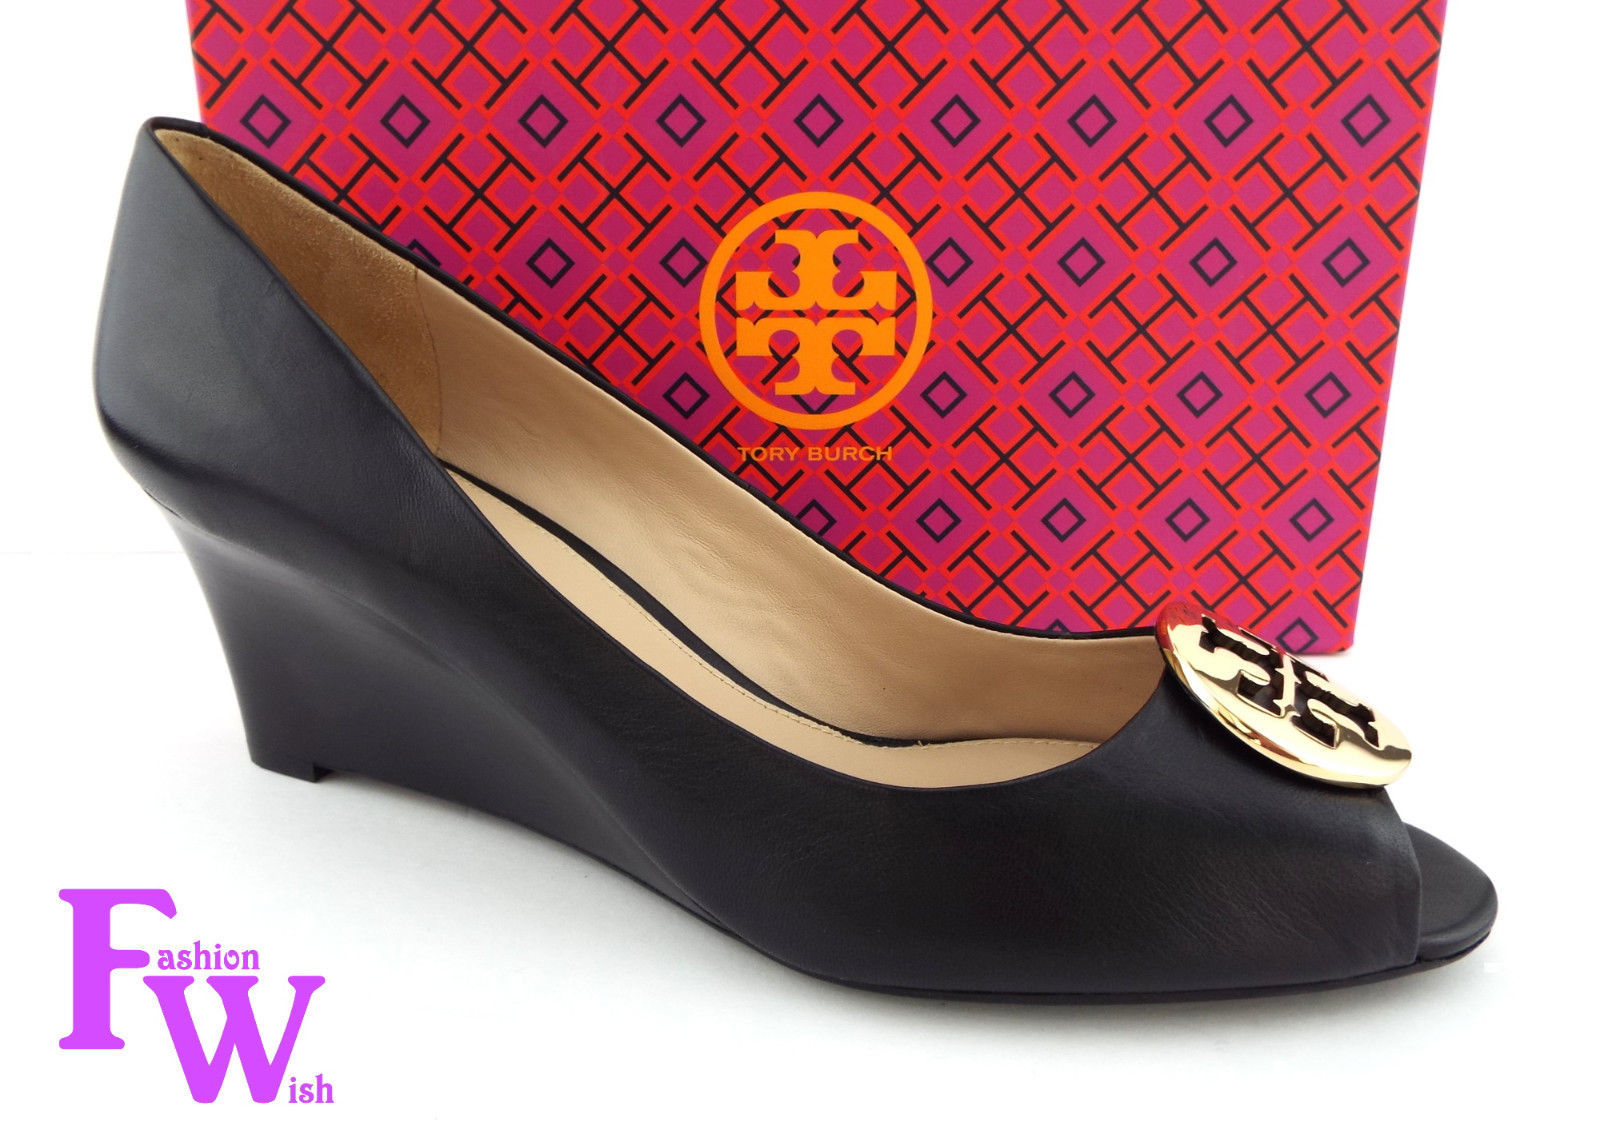 093c1db84897 New Tory Burch Size 12 Kara Black Open Toe and 33 similar items